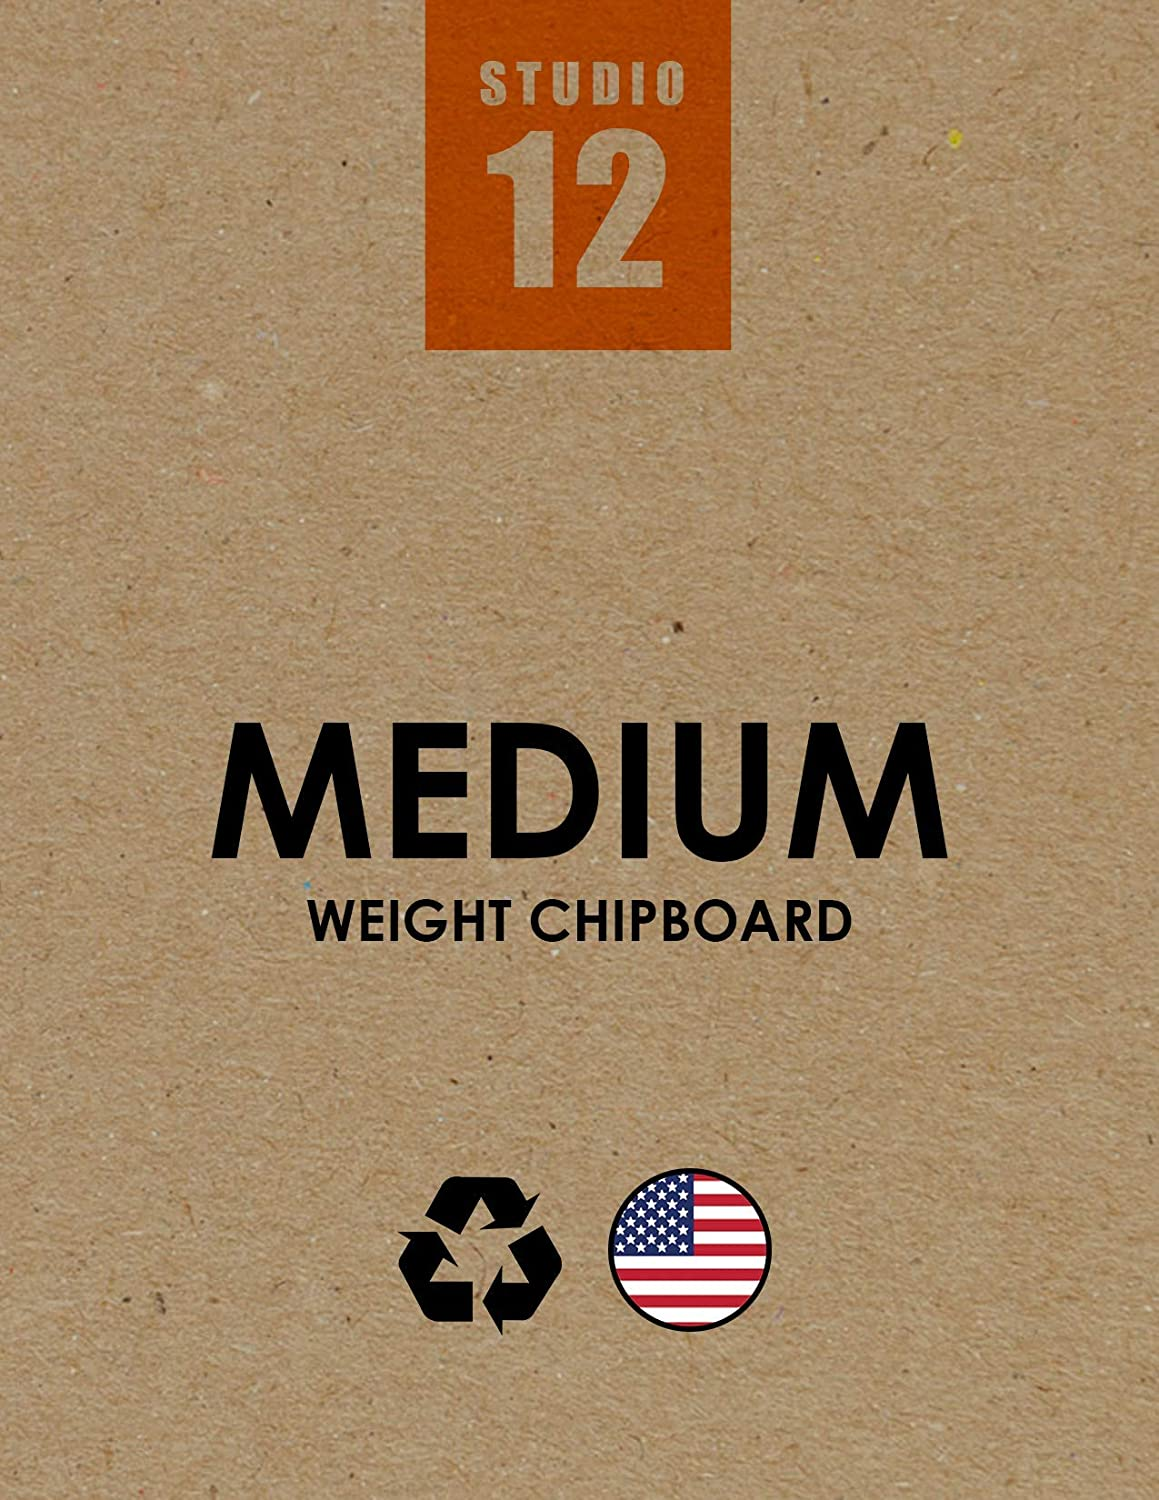 """Studio 12 Chipboard Sheets. Medium Weight. Natural Kraft Brown. Great for Model Building, Scrap Booking, Creative Projects and Protecting Valuable Photos and documents. (25 Sheets) (9"""" x 12"""")"""